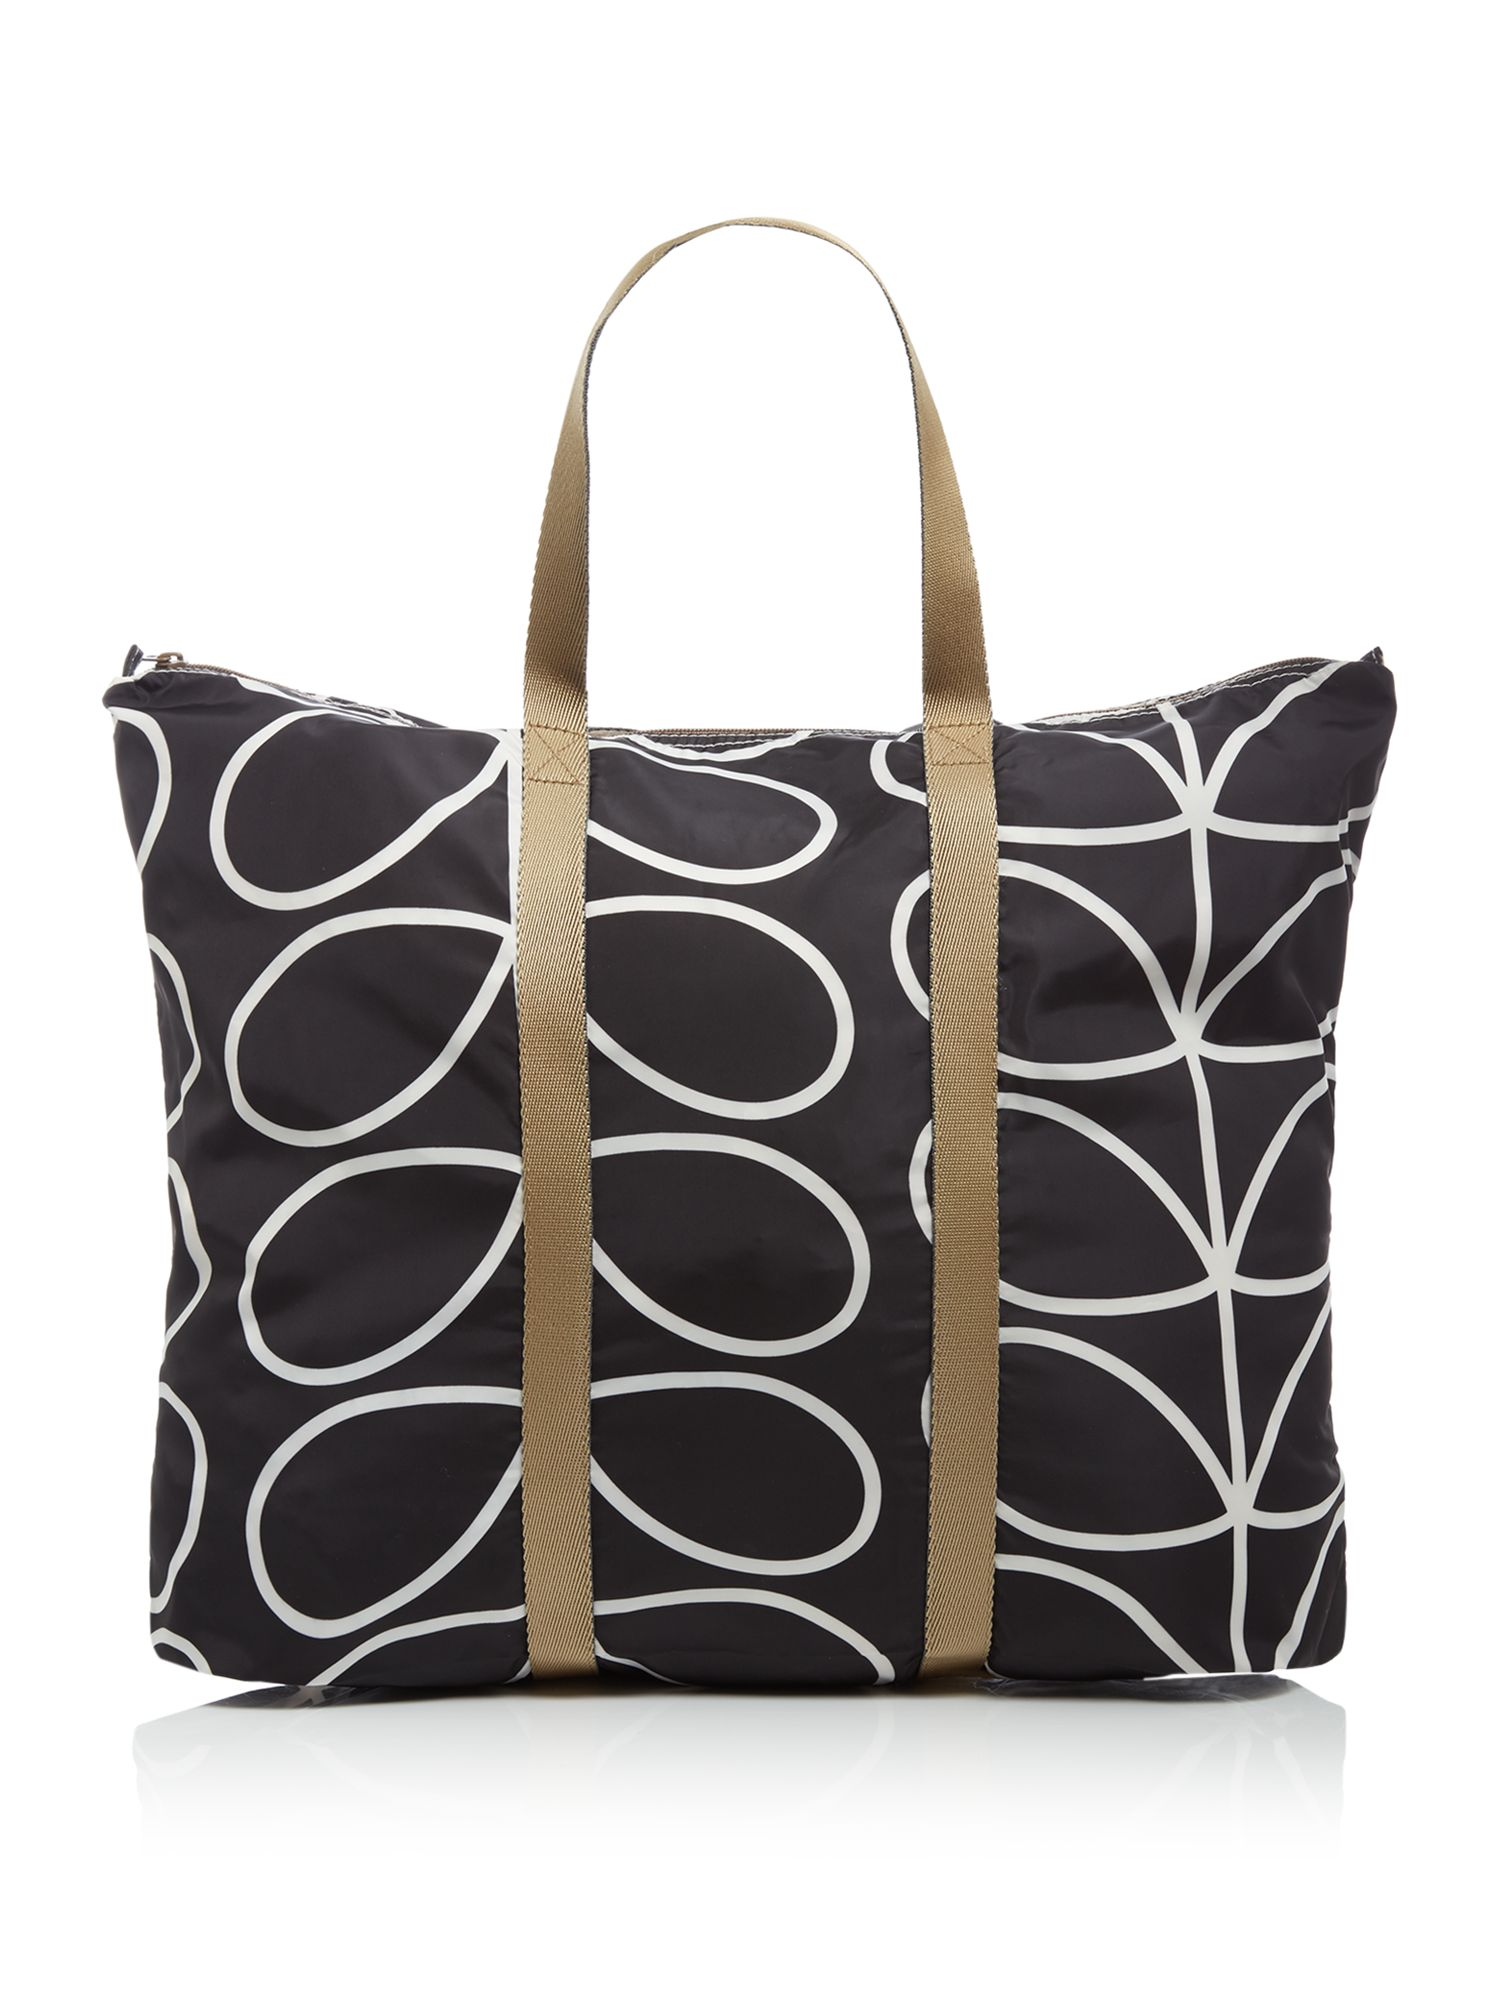 Orla Kiely Foldaway travel bag, Black